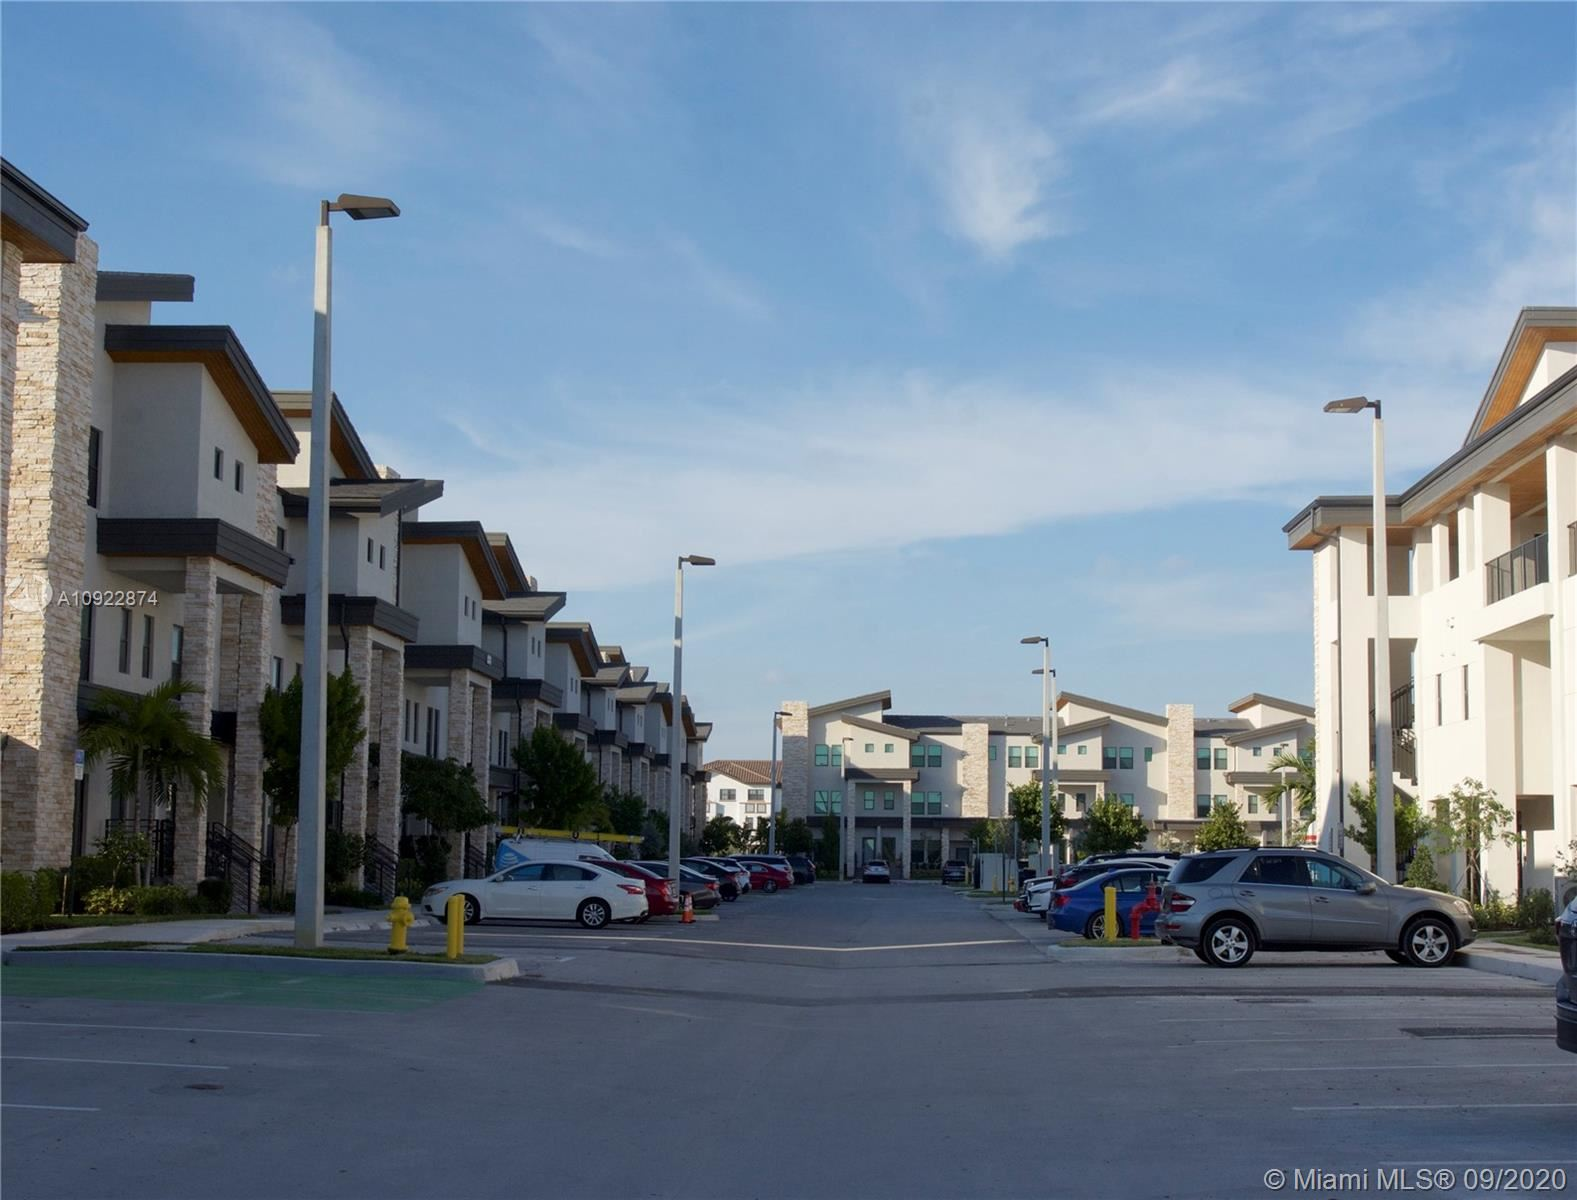 Photo of 10437 NW 82nd St #36, Doral, FL 33178 (MLS # A10922874)